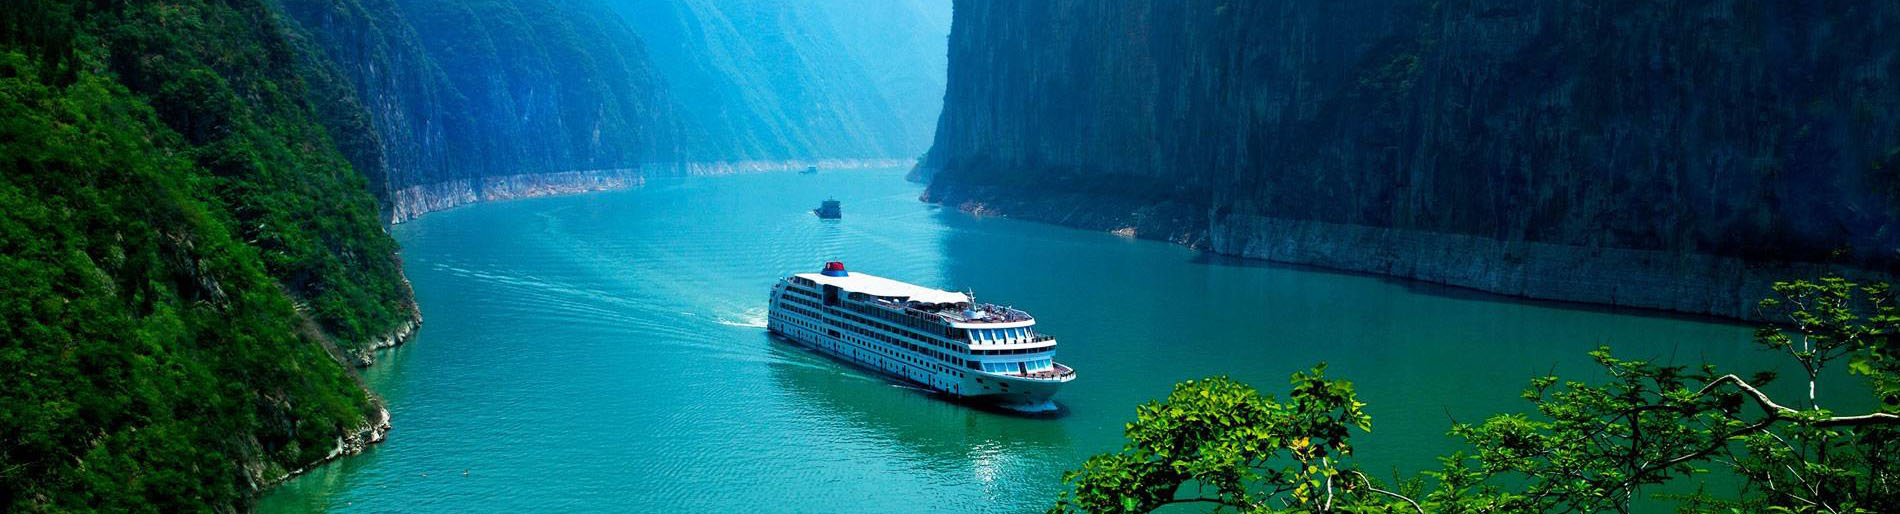 Yangtze, world's 3rd longest river with amazing cultural & natural views